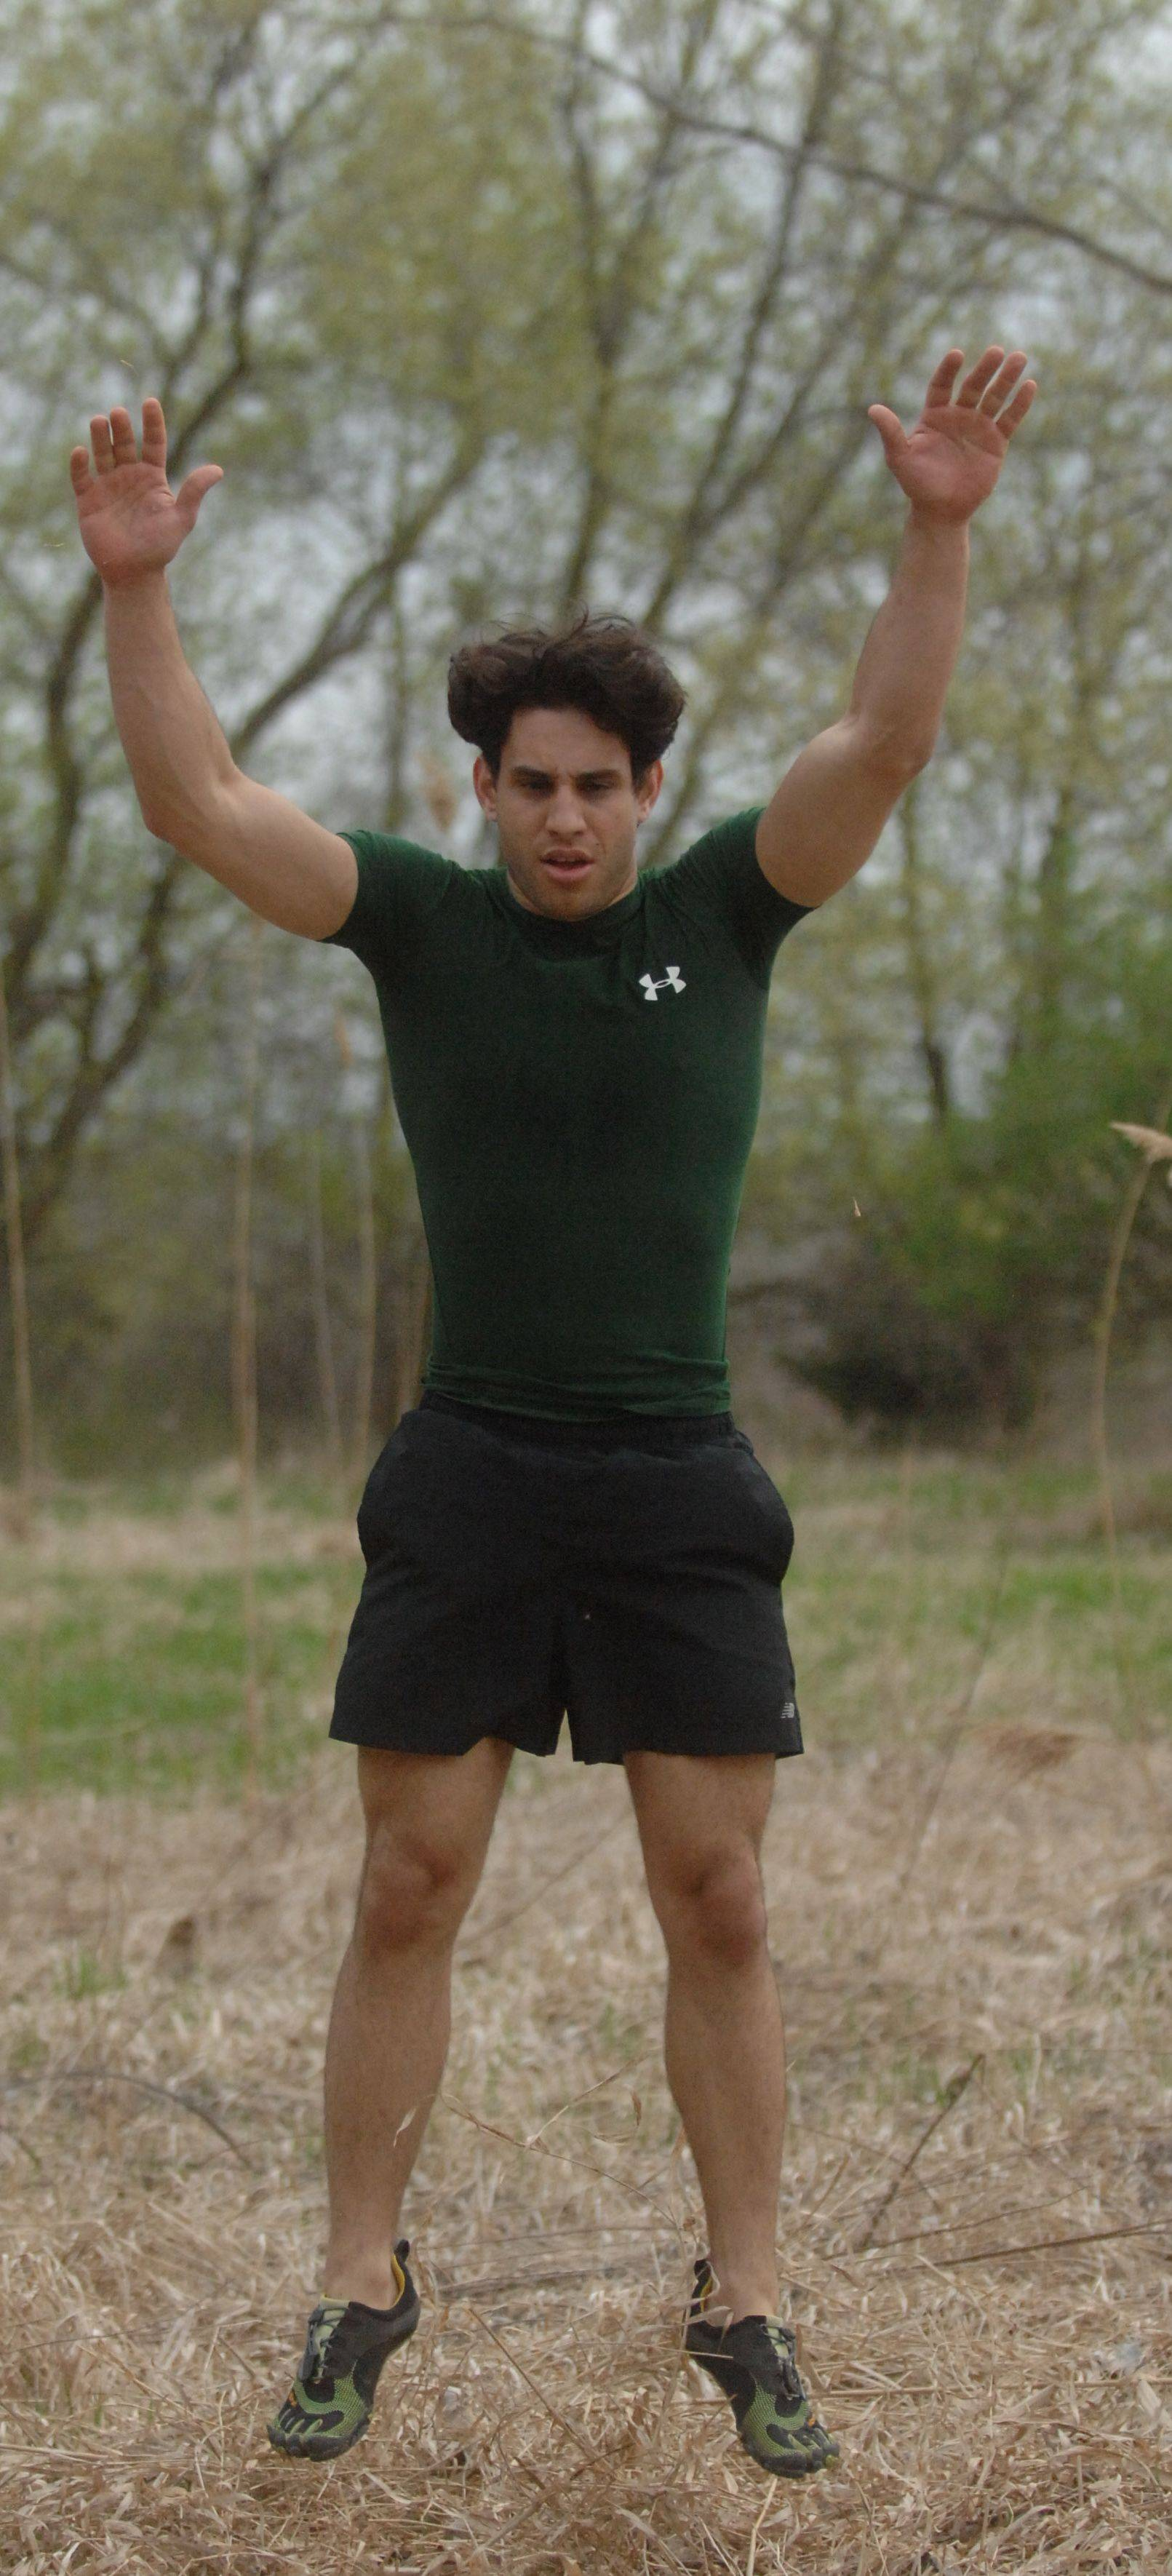 Anthony Matesi of Carol Stream is in training for his first Death Race in Vermont on June 15.